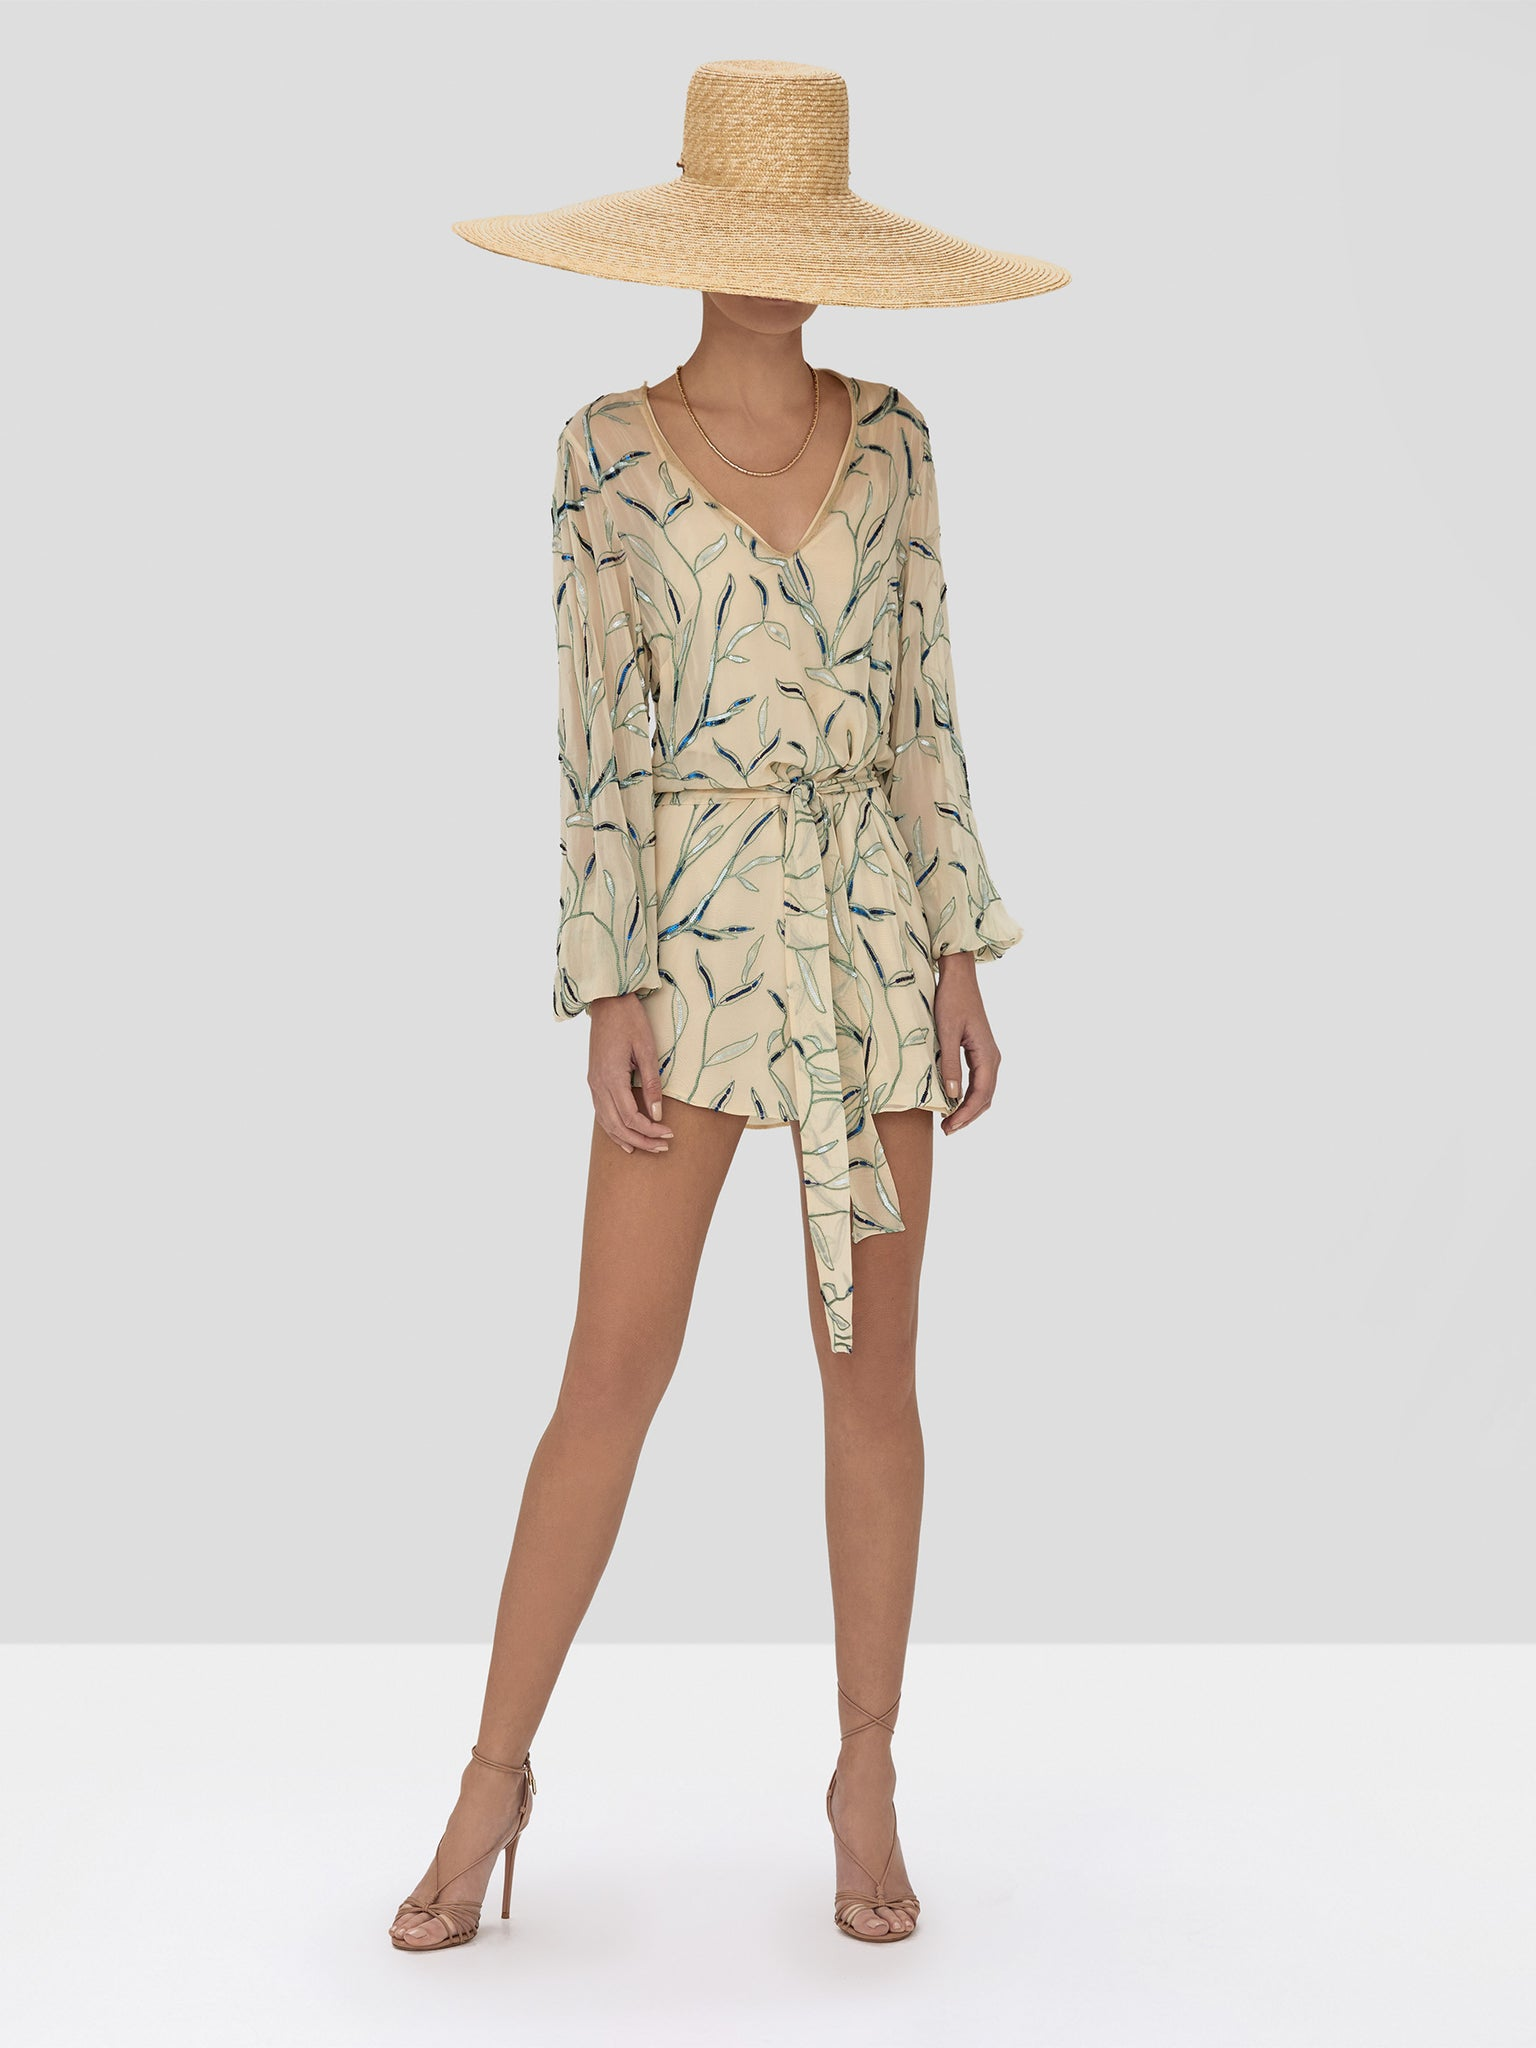 Alexis Lujana Dress in Tan Sequin Embroidery from the Spring Summer 2020 Collection